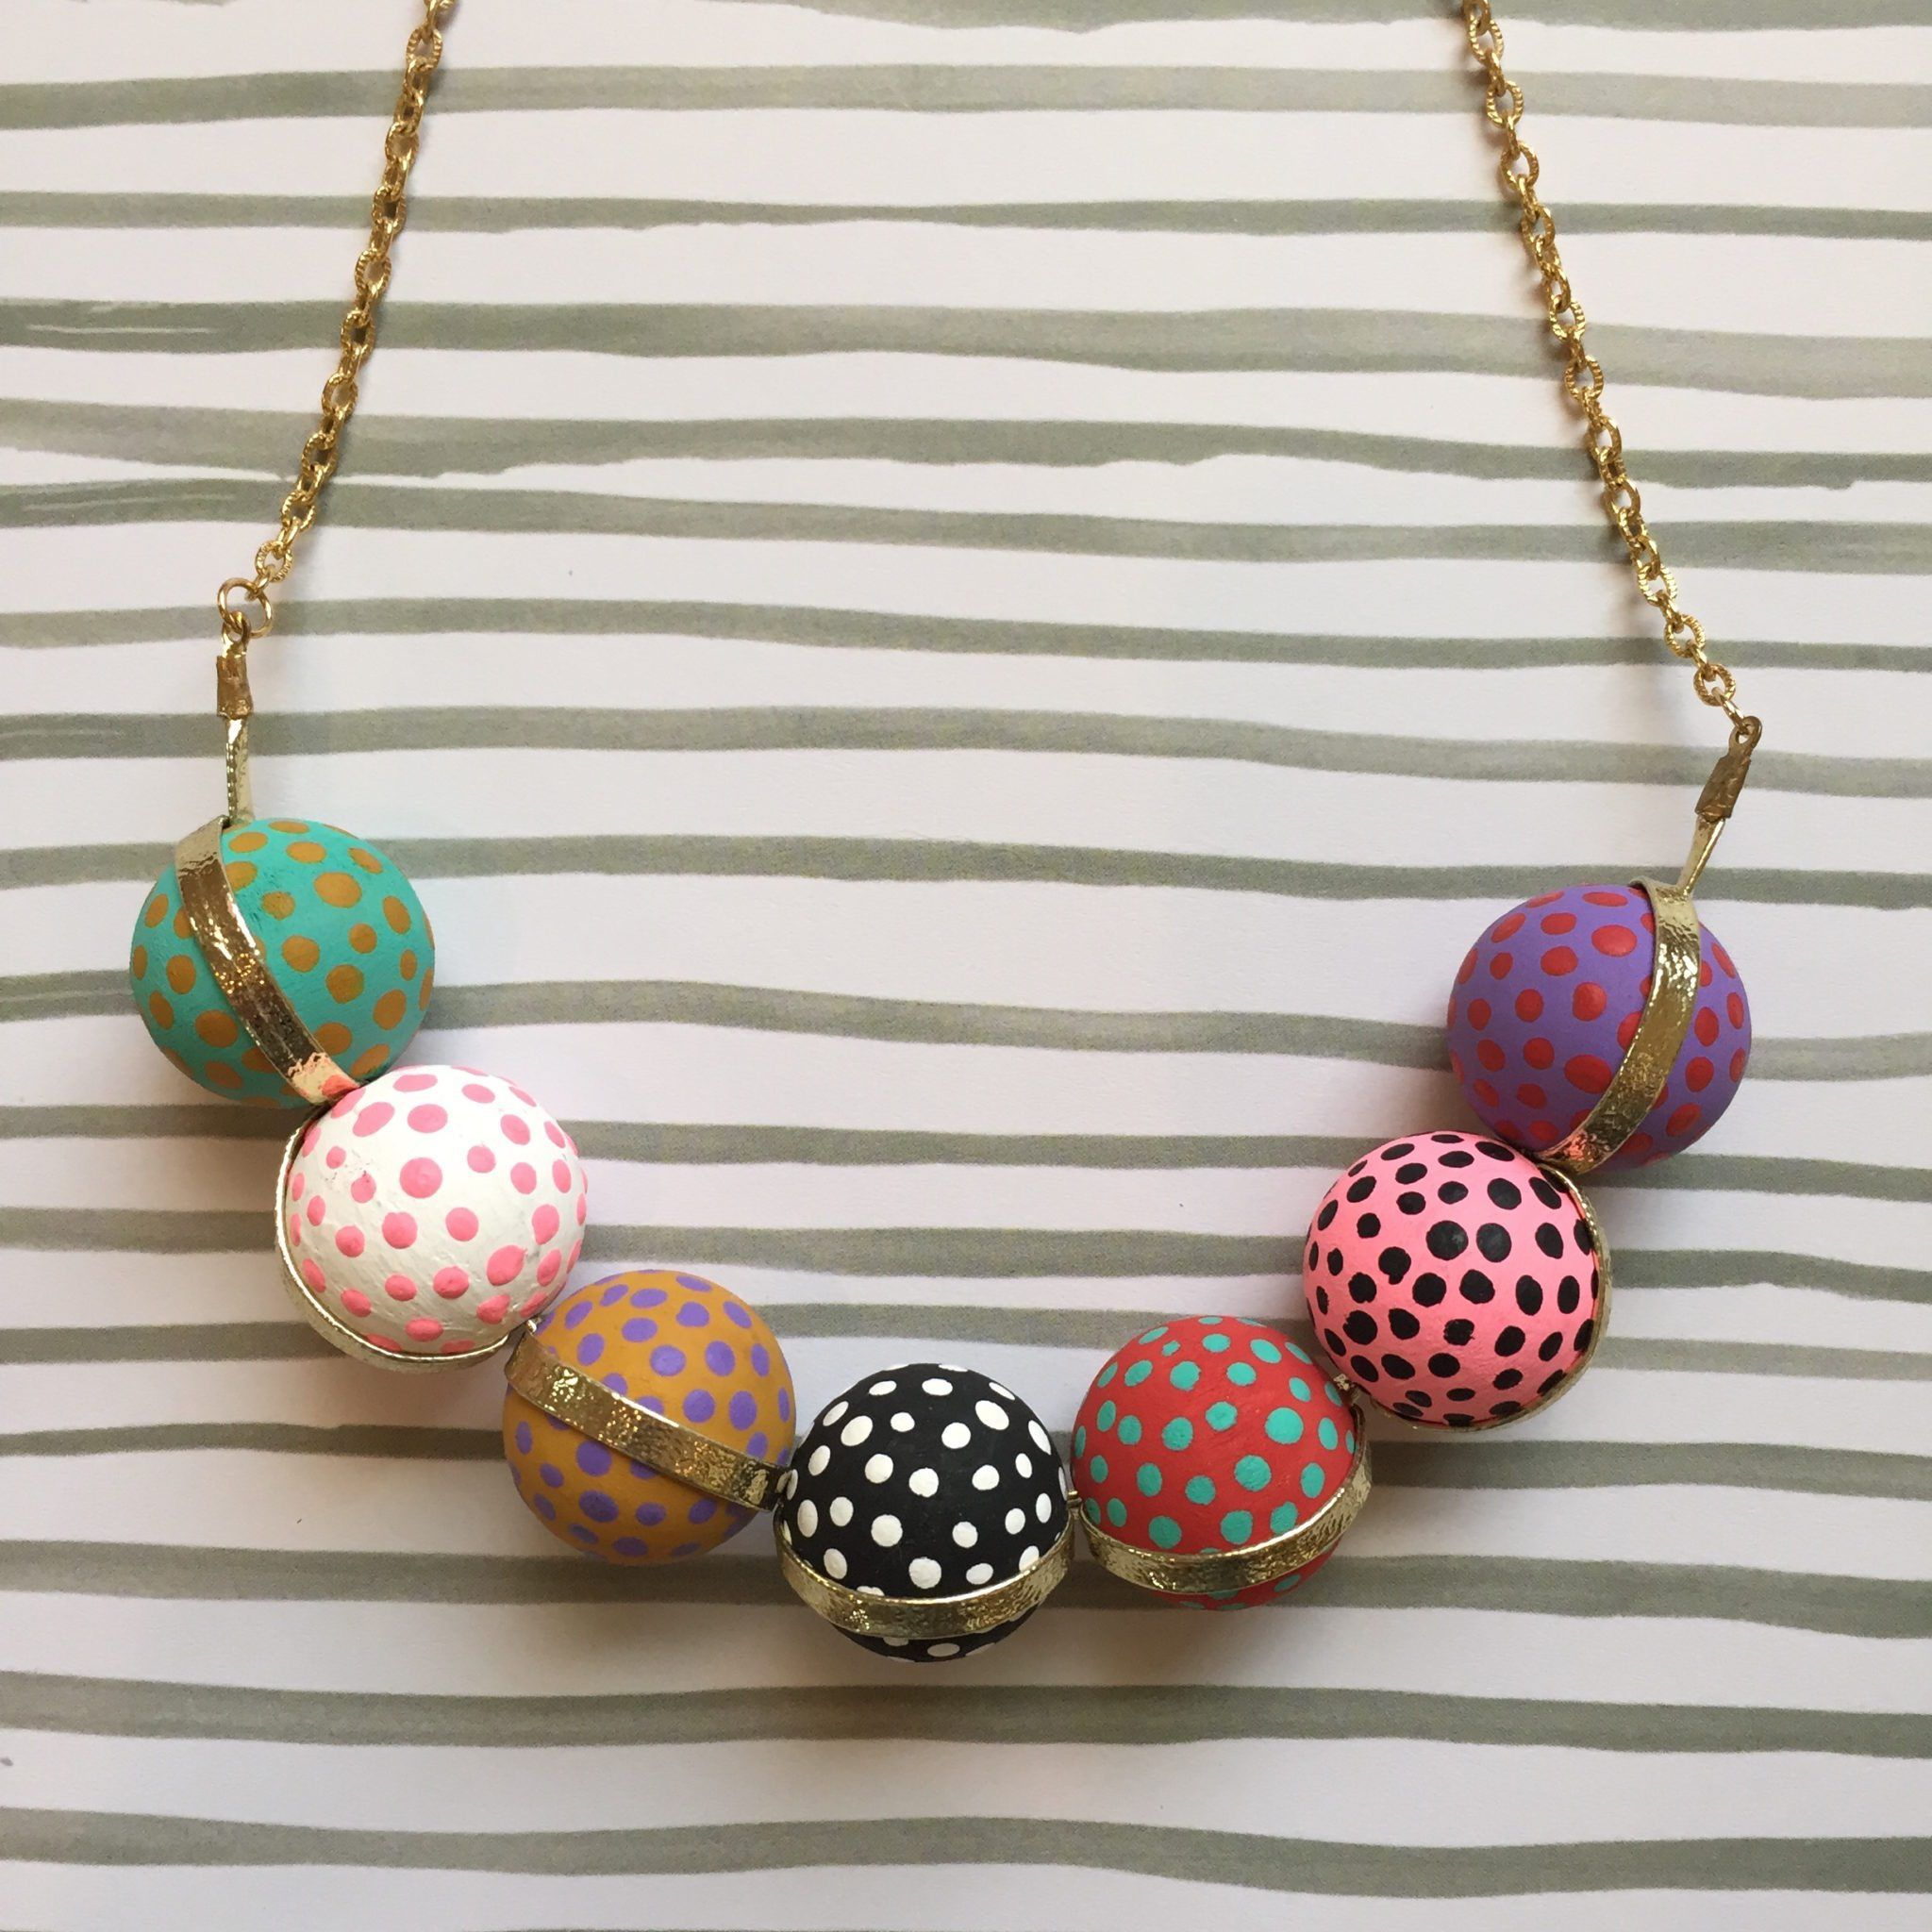 5 DIY Trendy Transformations for Wooden Craft Store Beads | Jennifer Perkins #JenniferPerkins #diythiswithjenniferperkins #diy #diyproject #crafts #crafty #CreateEveryday #DoItYourself #RecycledCrafts #upcycle #jewelry #ThatIsCute